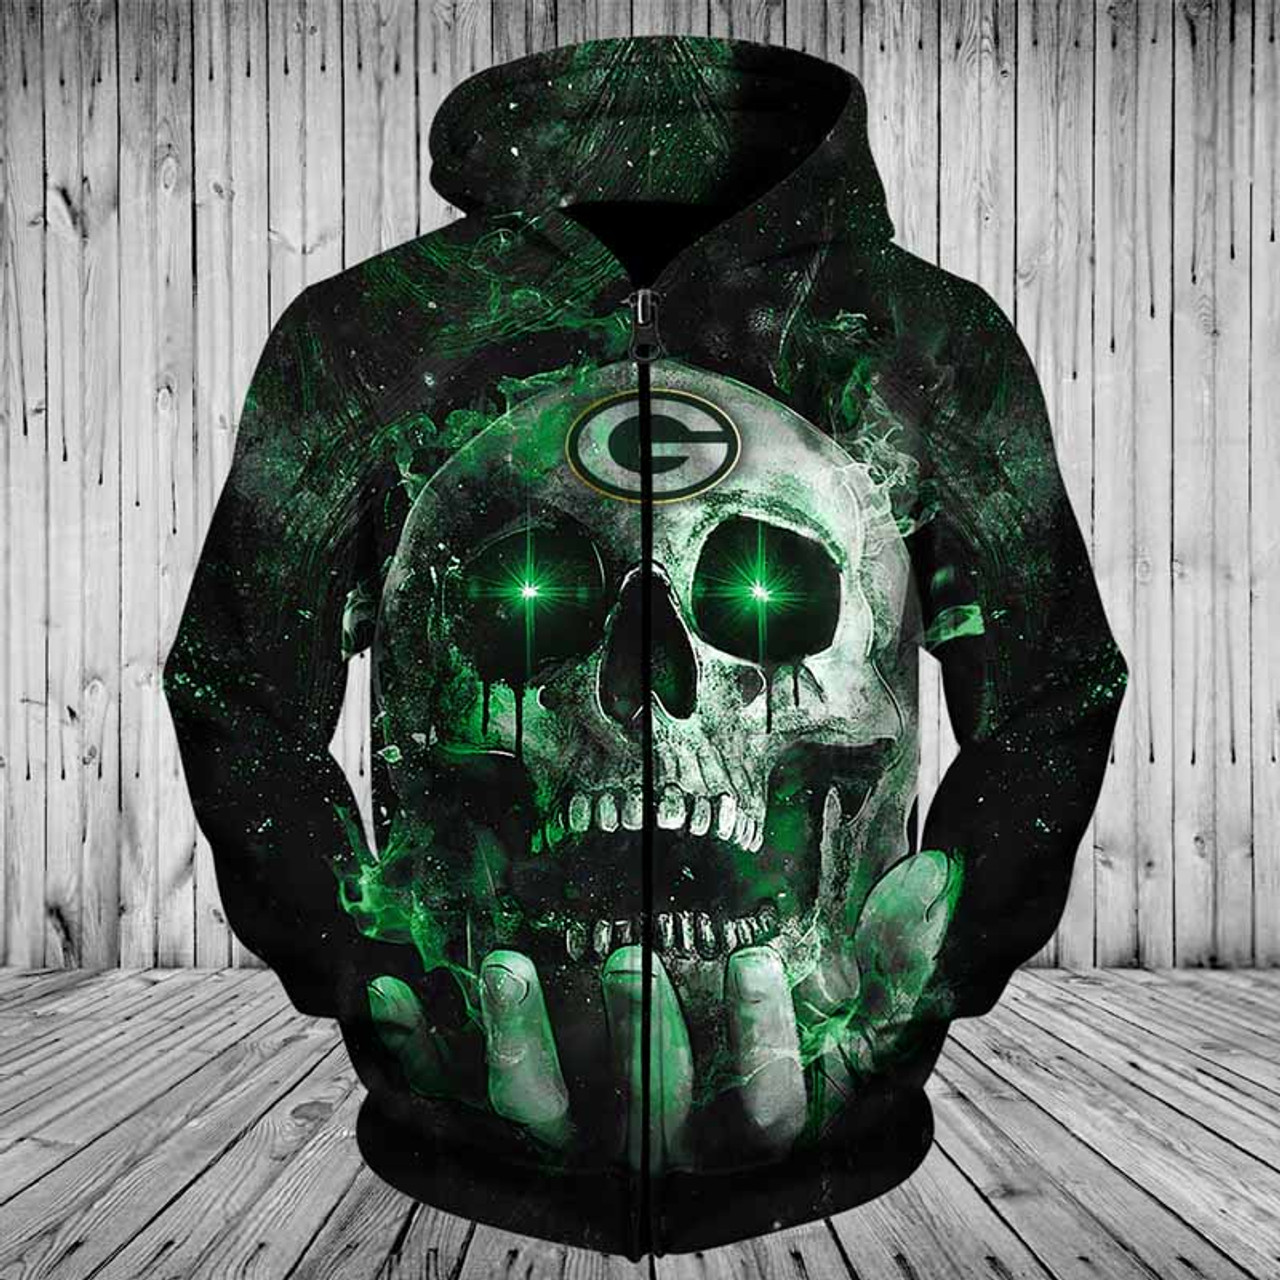 big sale 73582 b3044 **(OFFICIAL-N.F.L.GREEN-BAY-PACKERS-TEAM-ZIPPERED-NEON-SKULL-HOODIES/CUSTOM-3D-NEON-GRAPHIC-PRINTED-DOUBLE-SIDED-ALL-OVER-OFFICIAL-PACKERS-LOGOS,IN-PA...